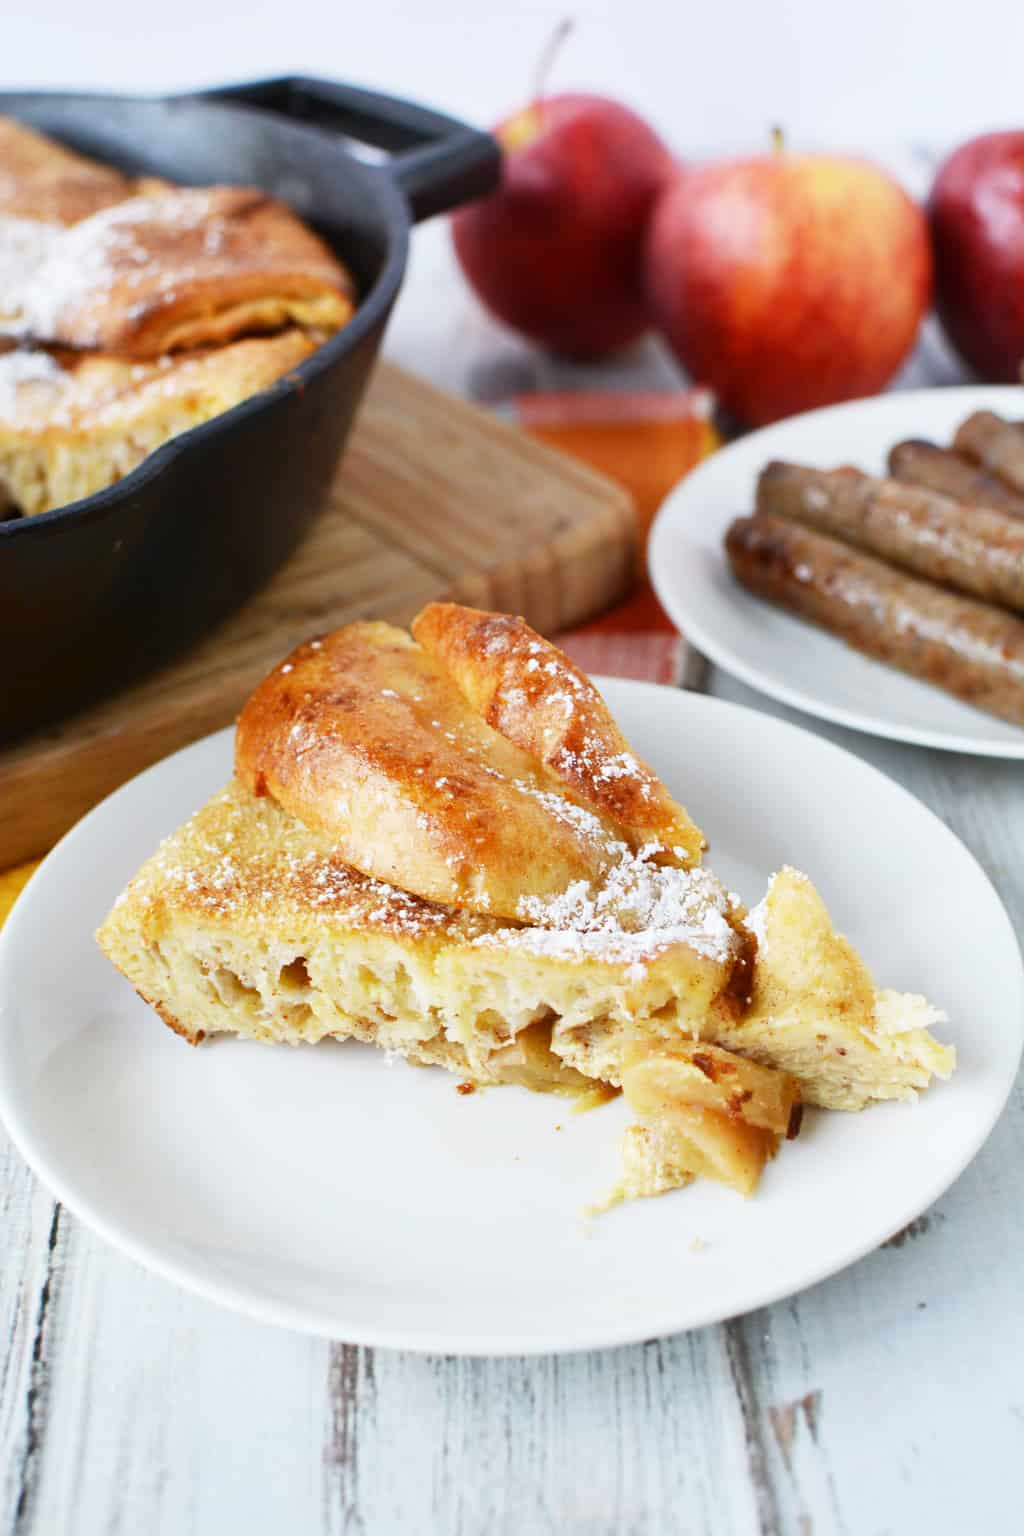 Easy Baked Apple Cinnamon Skillet French Toast Recipe